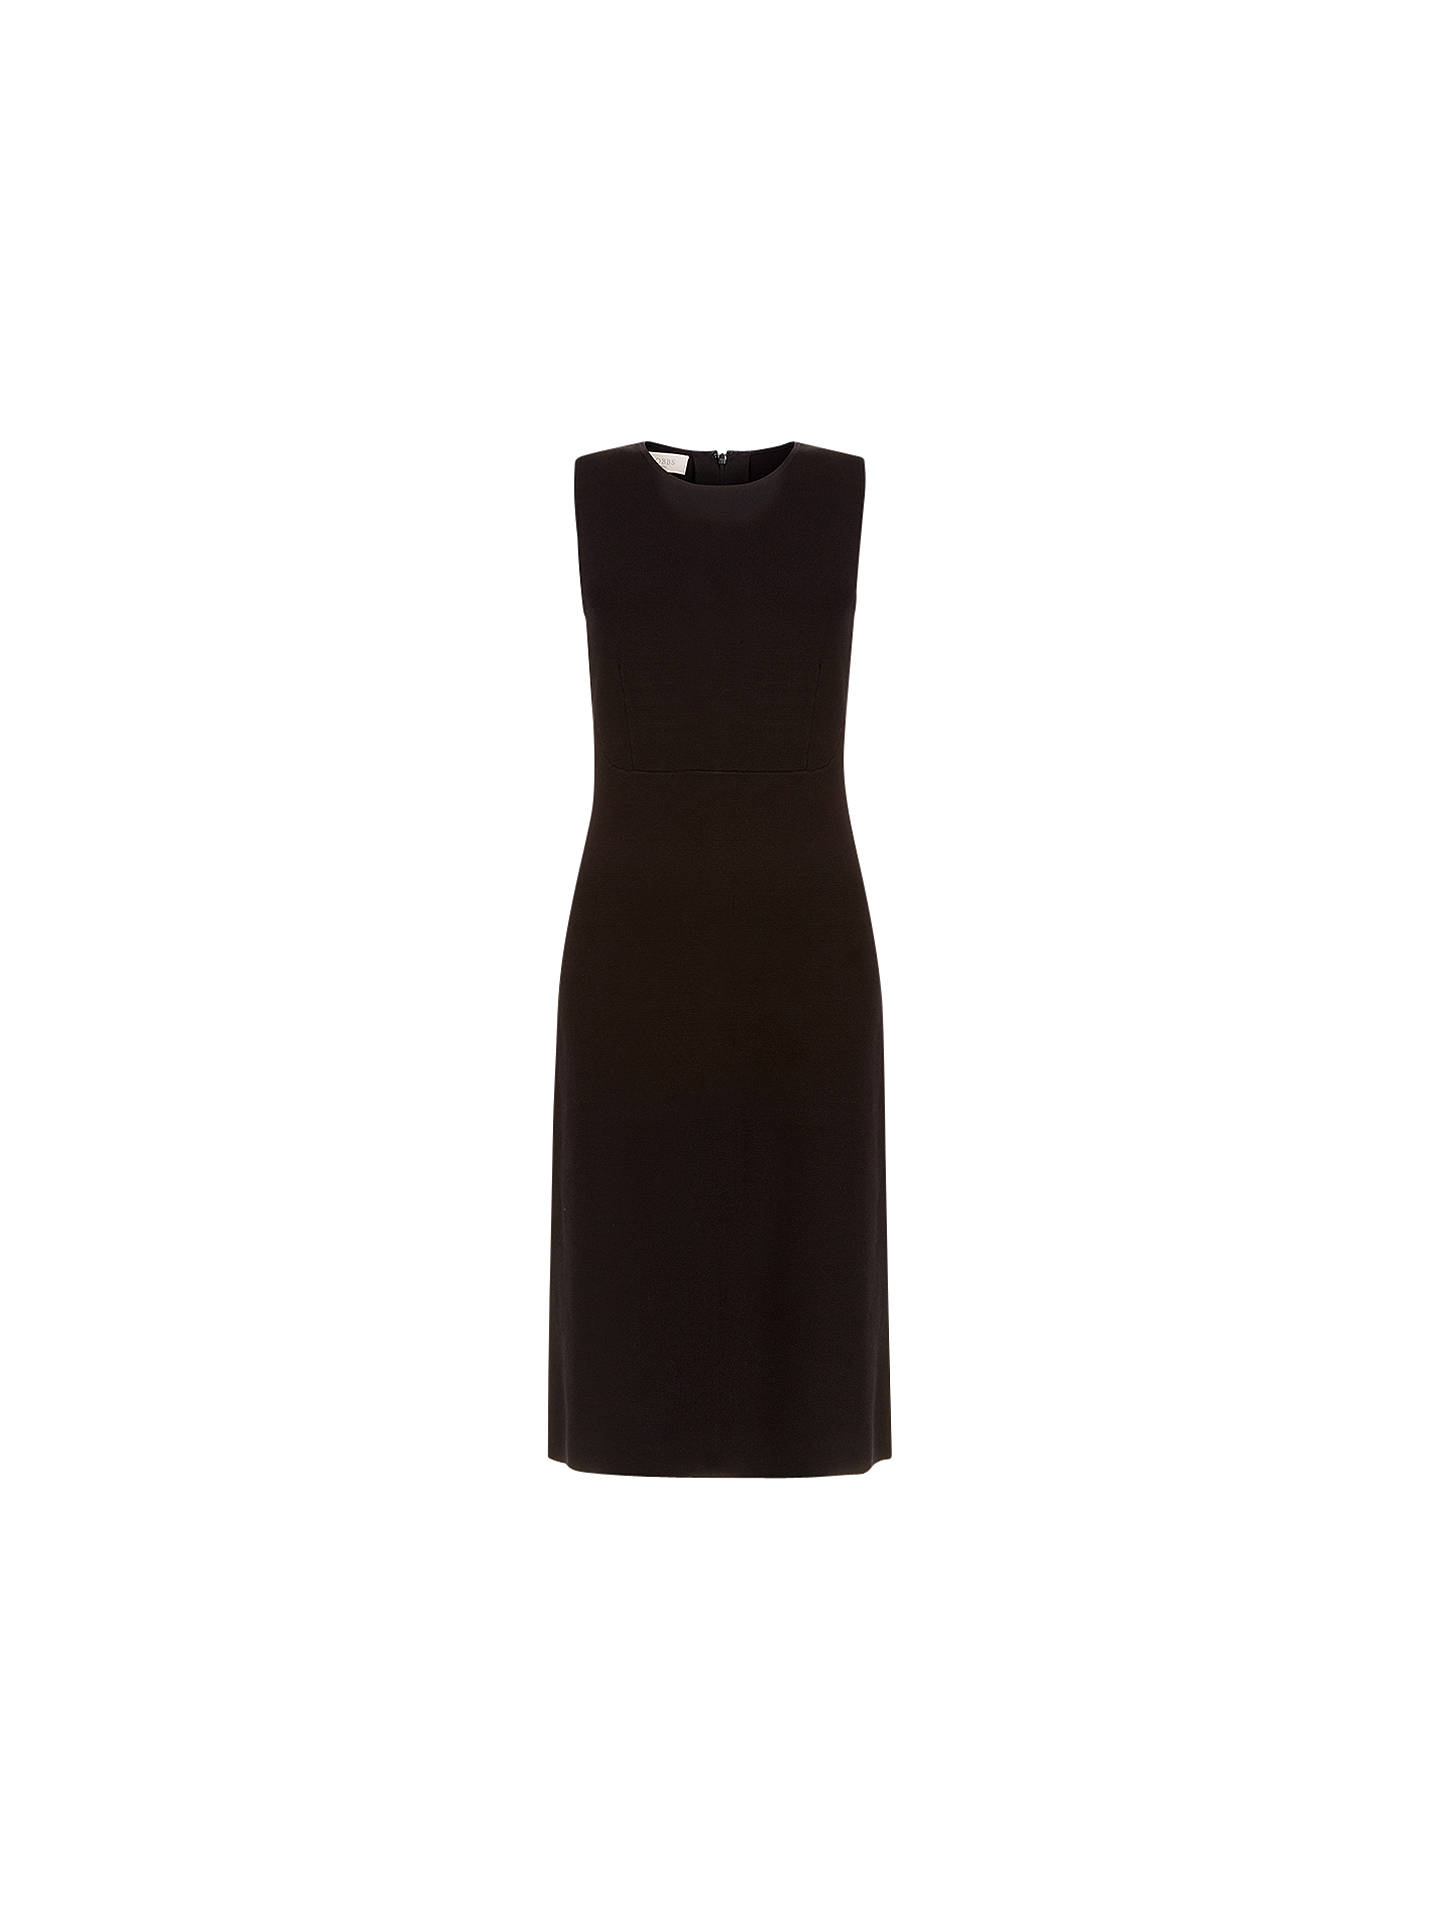 1c4816806a9 Buy Hobbs Melody Dress, Black, 6 Online at johnlewis.com